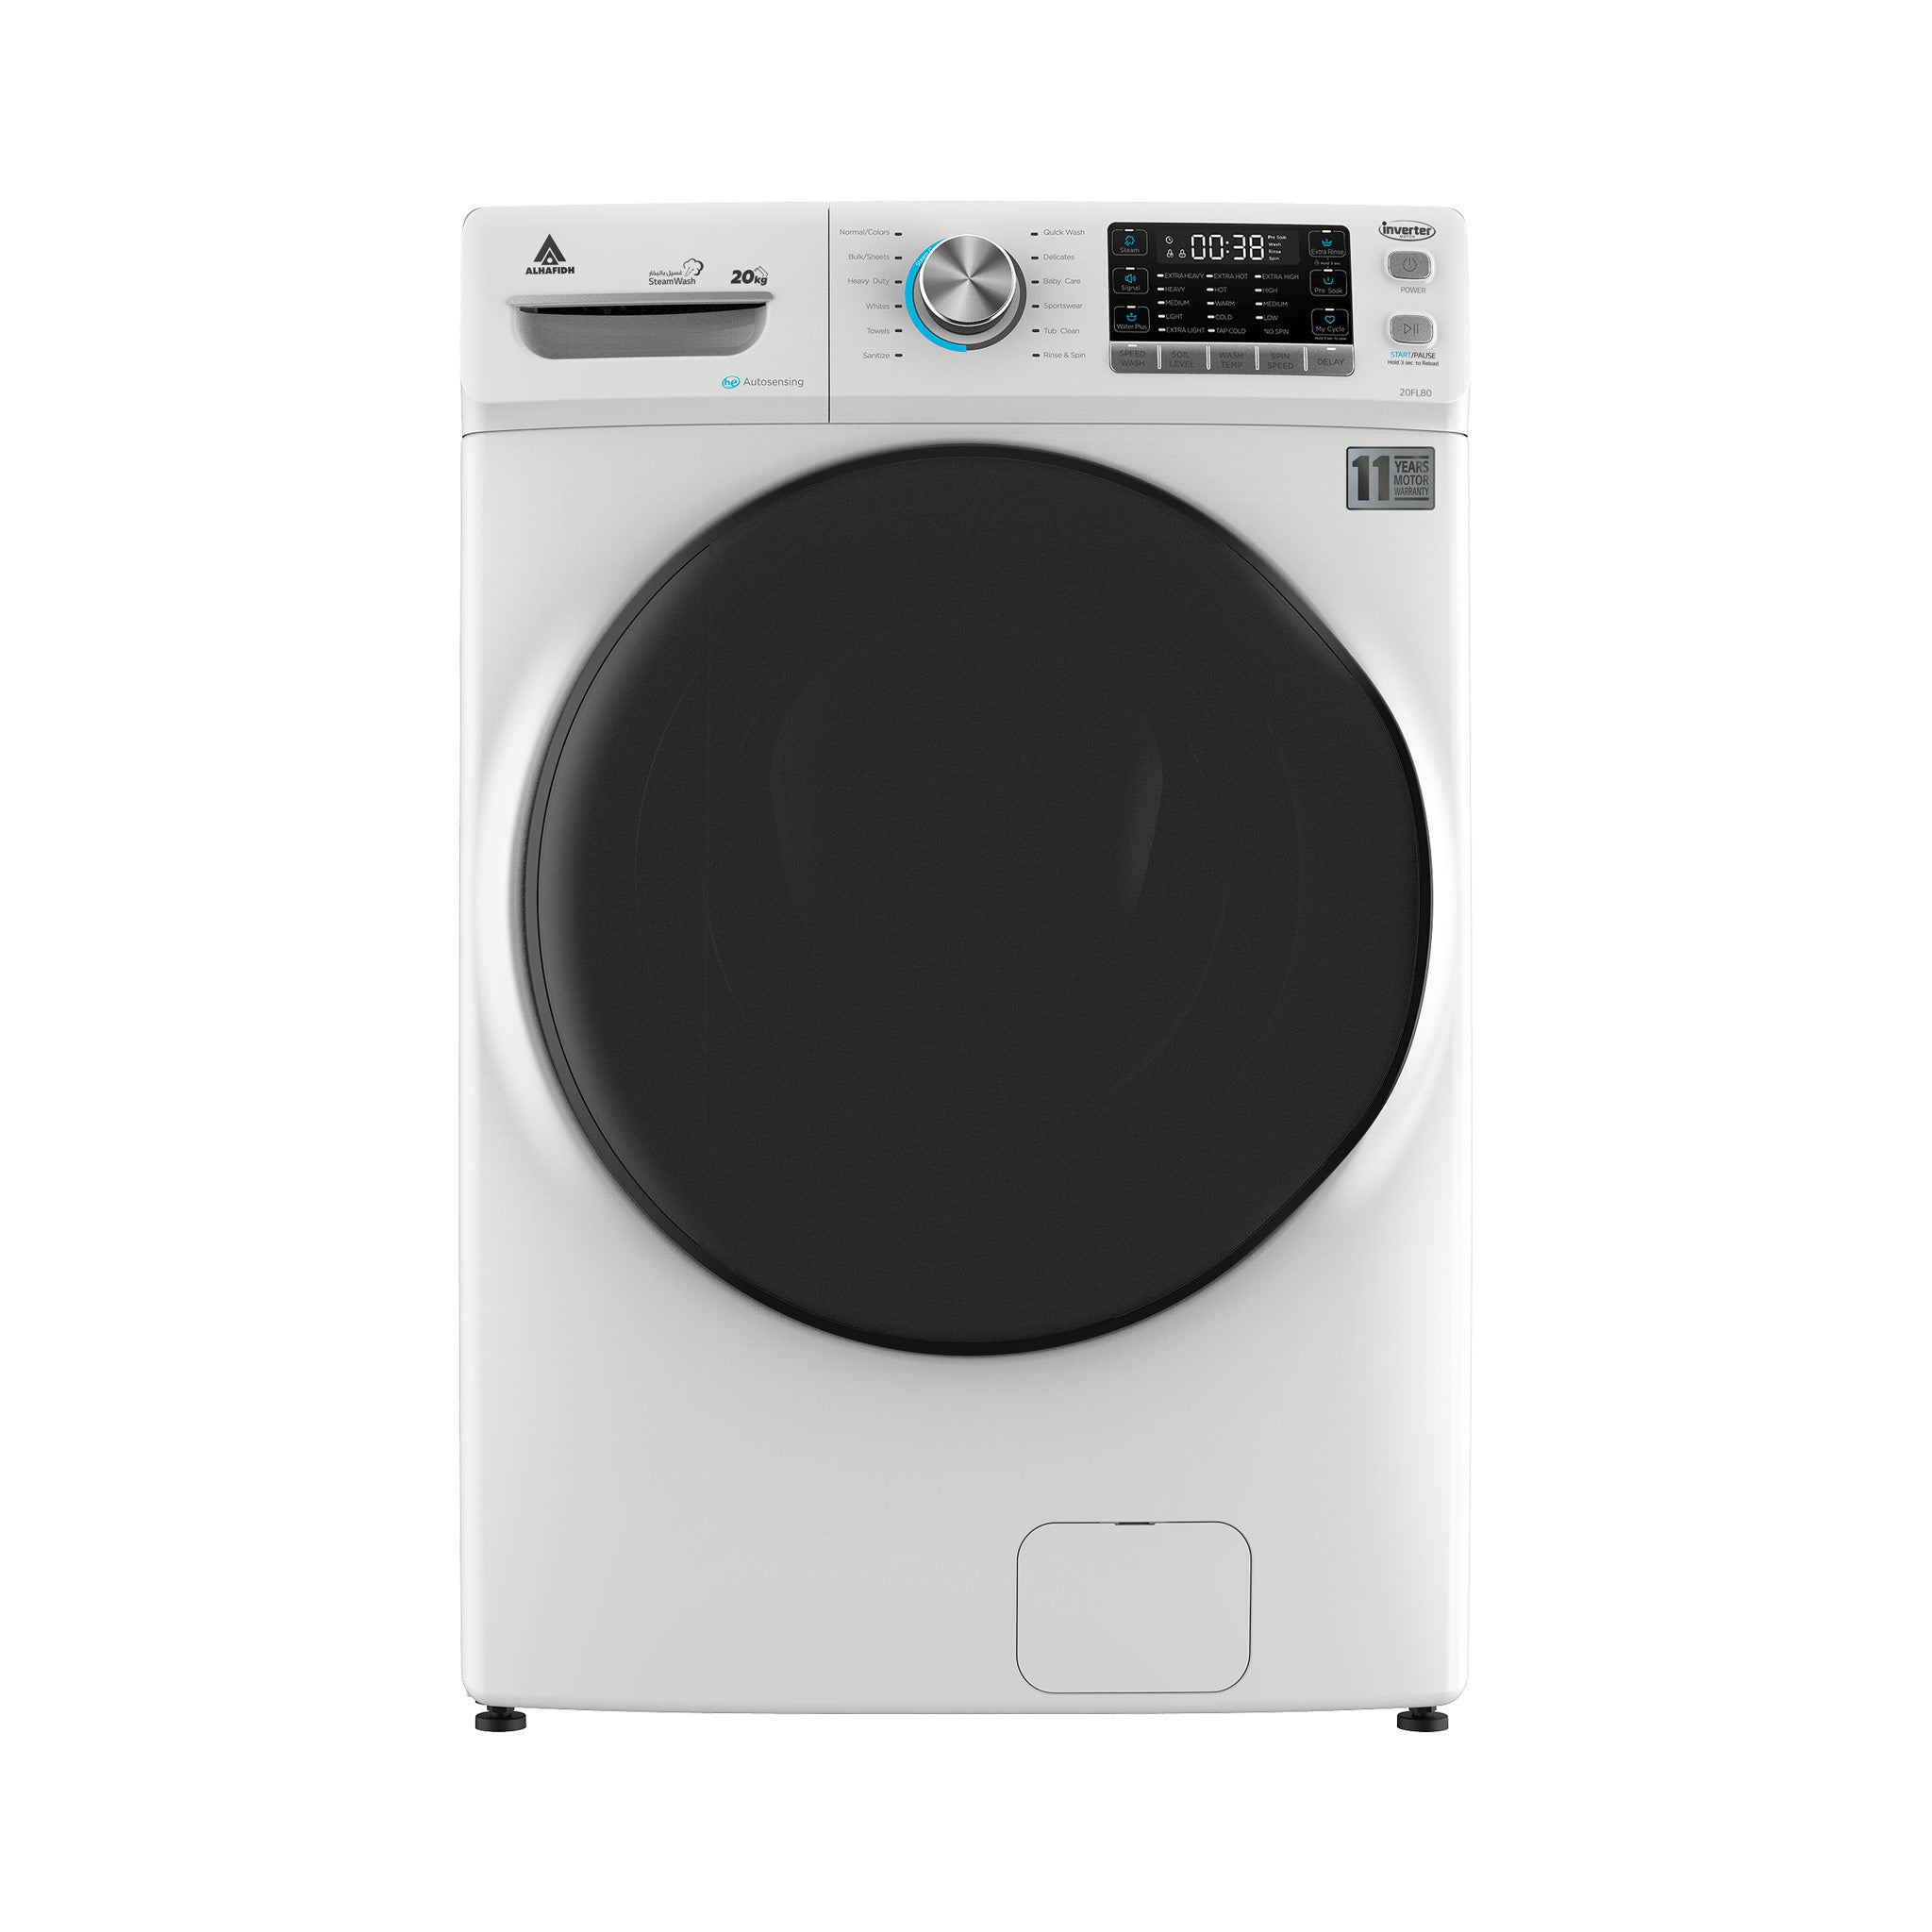 20KG Front Loading Washing Machine